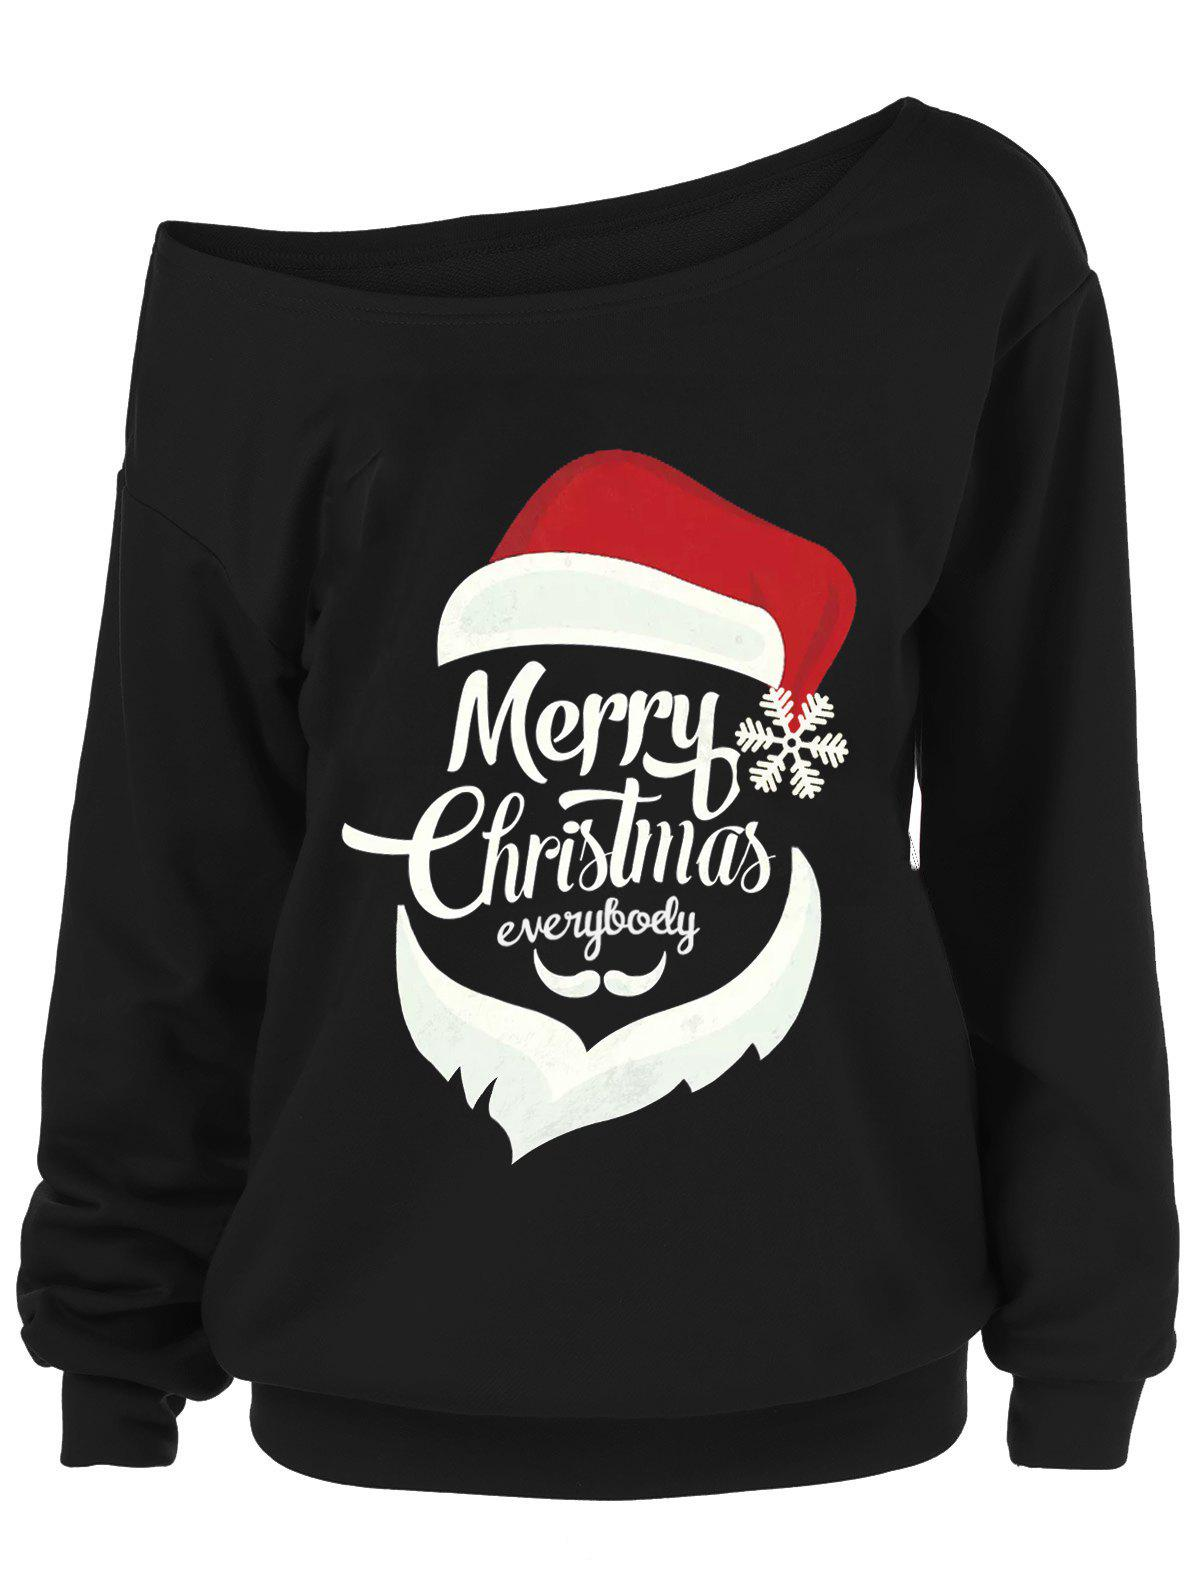 Merry Christmas Santa Claus Plus Size Sweatshirts side bowknot embellished plus size sweatshirts